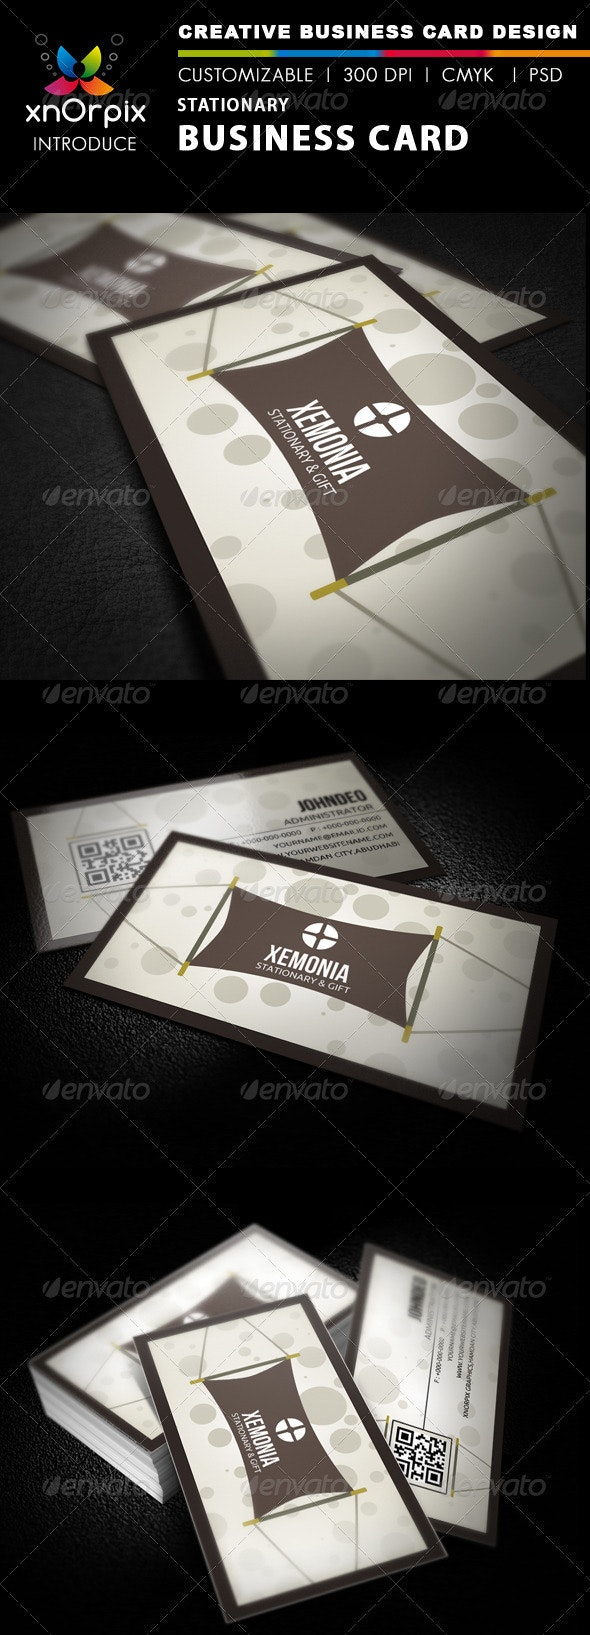 Stationary Business Card - Business Cards Print Templates